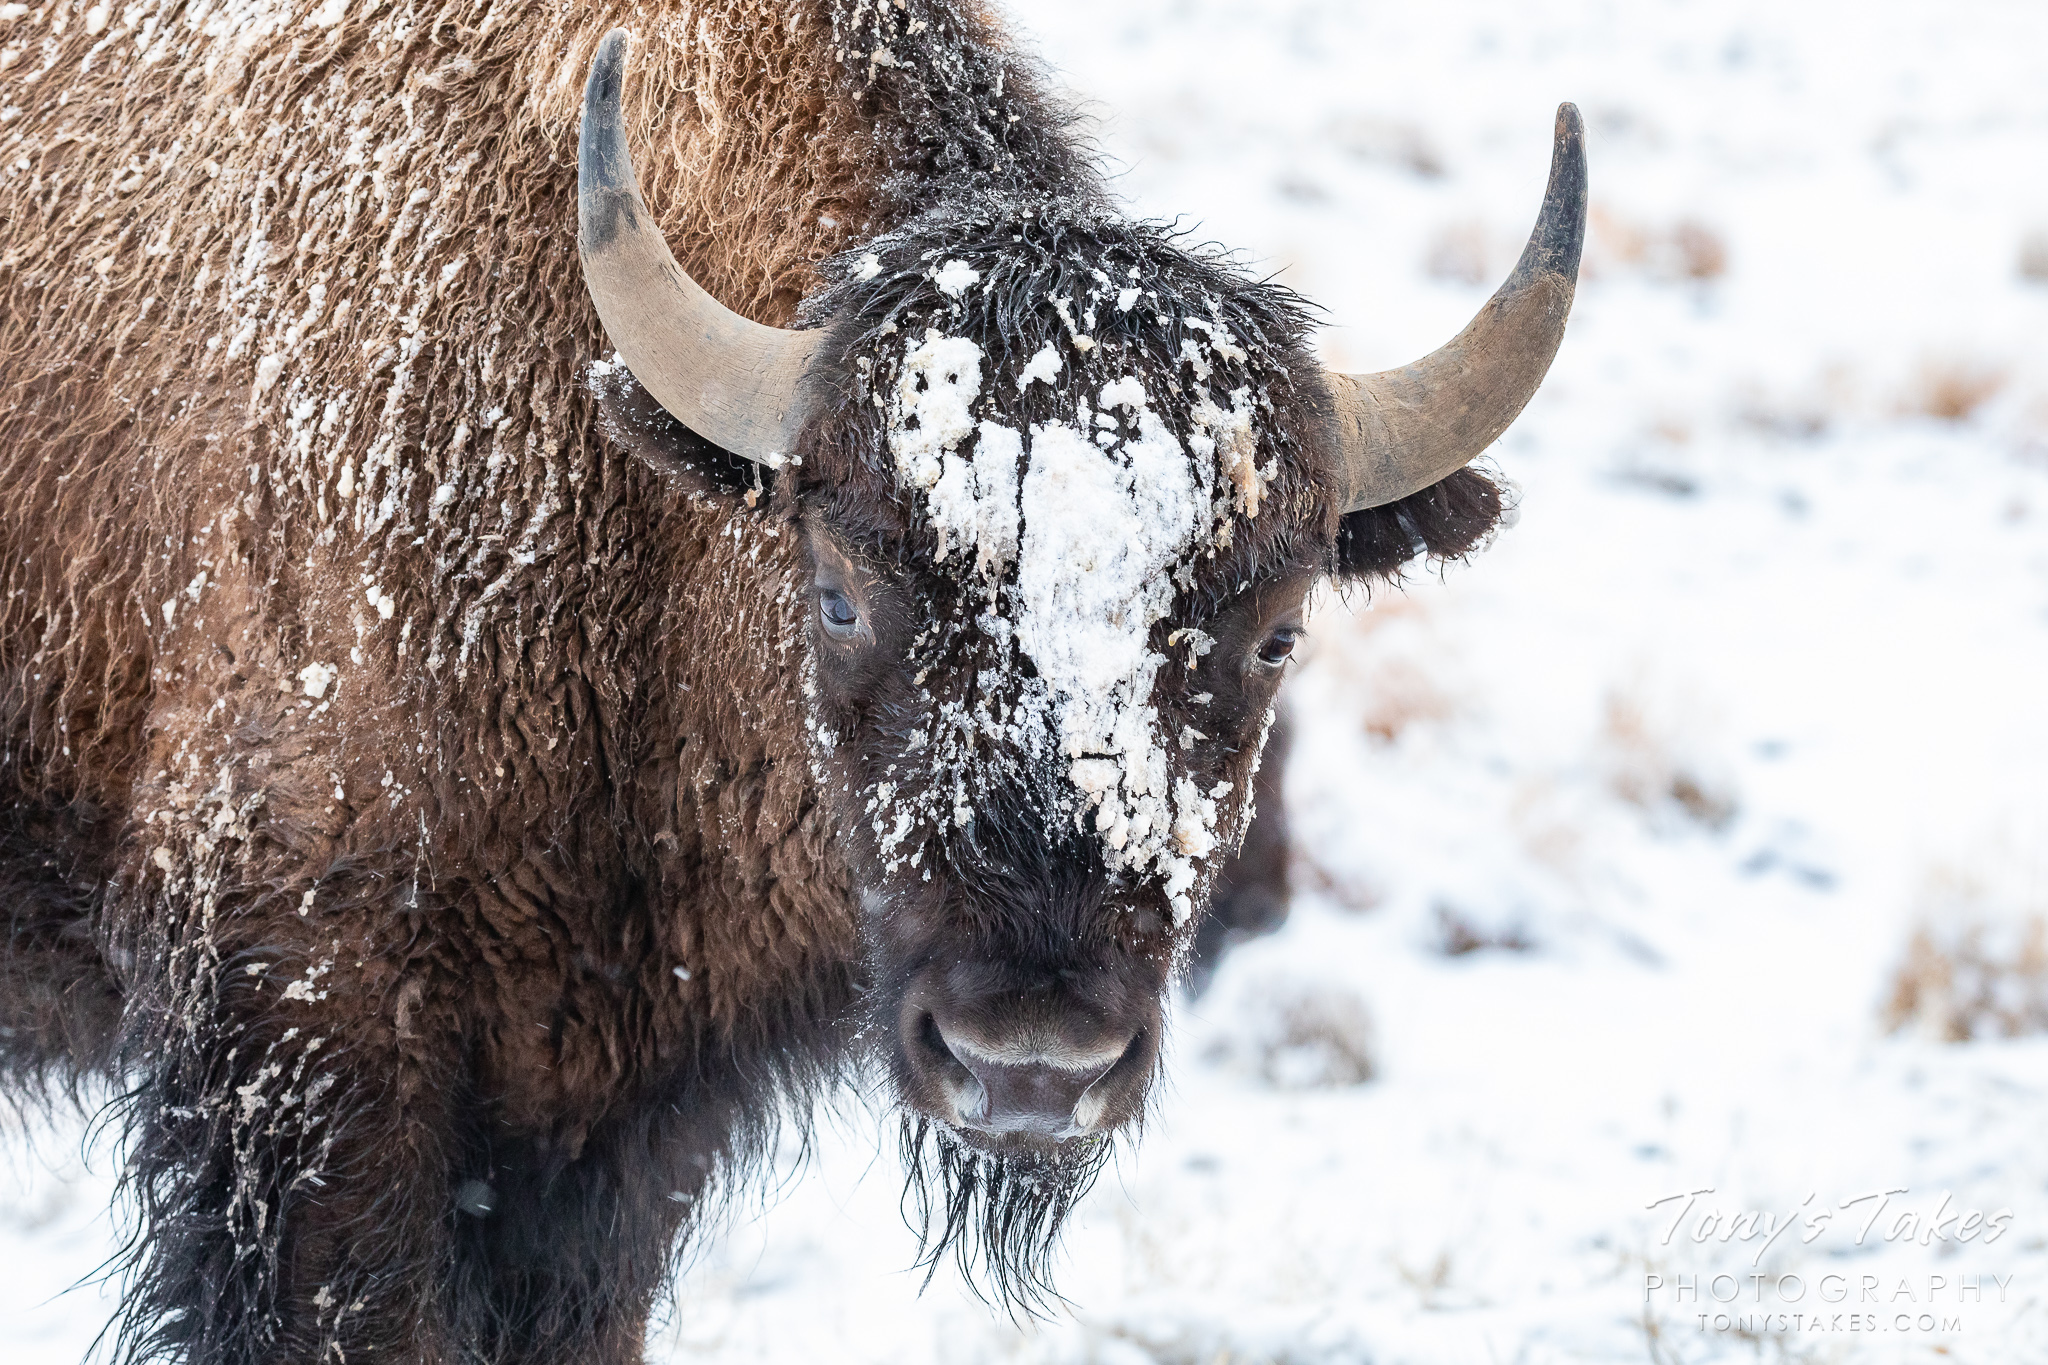 Bison with a face full of snow